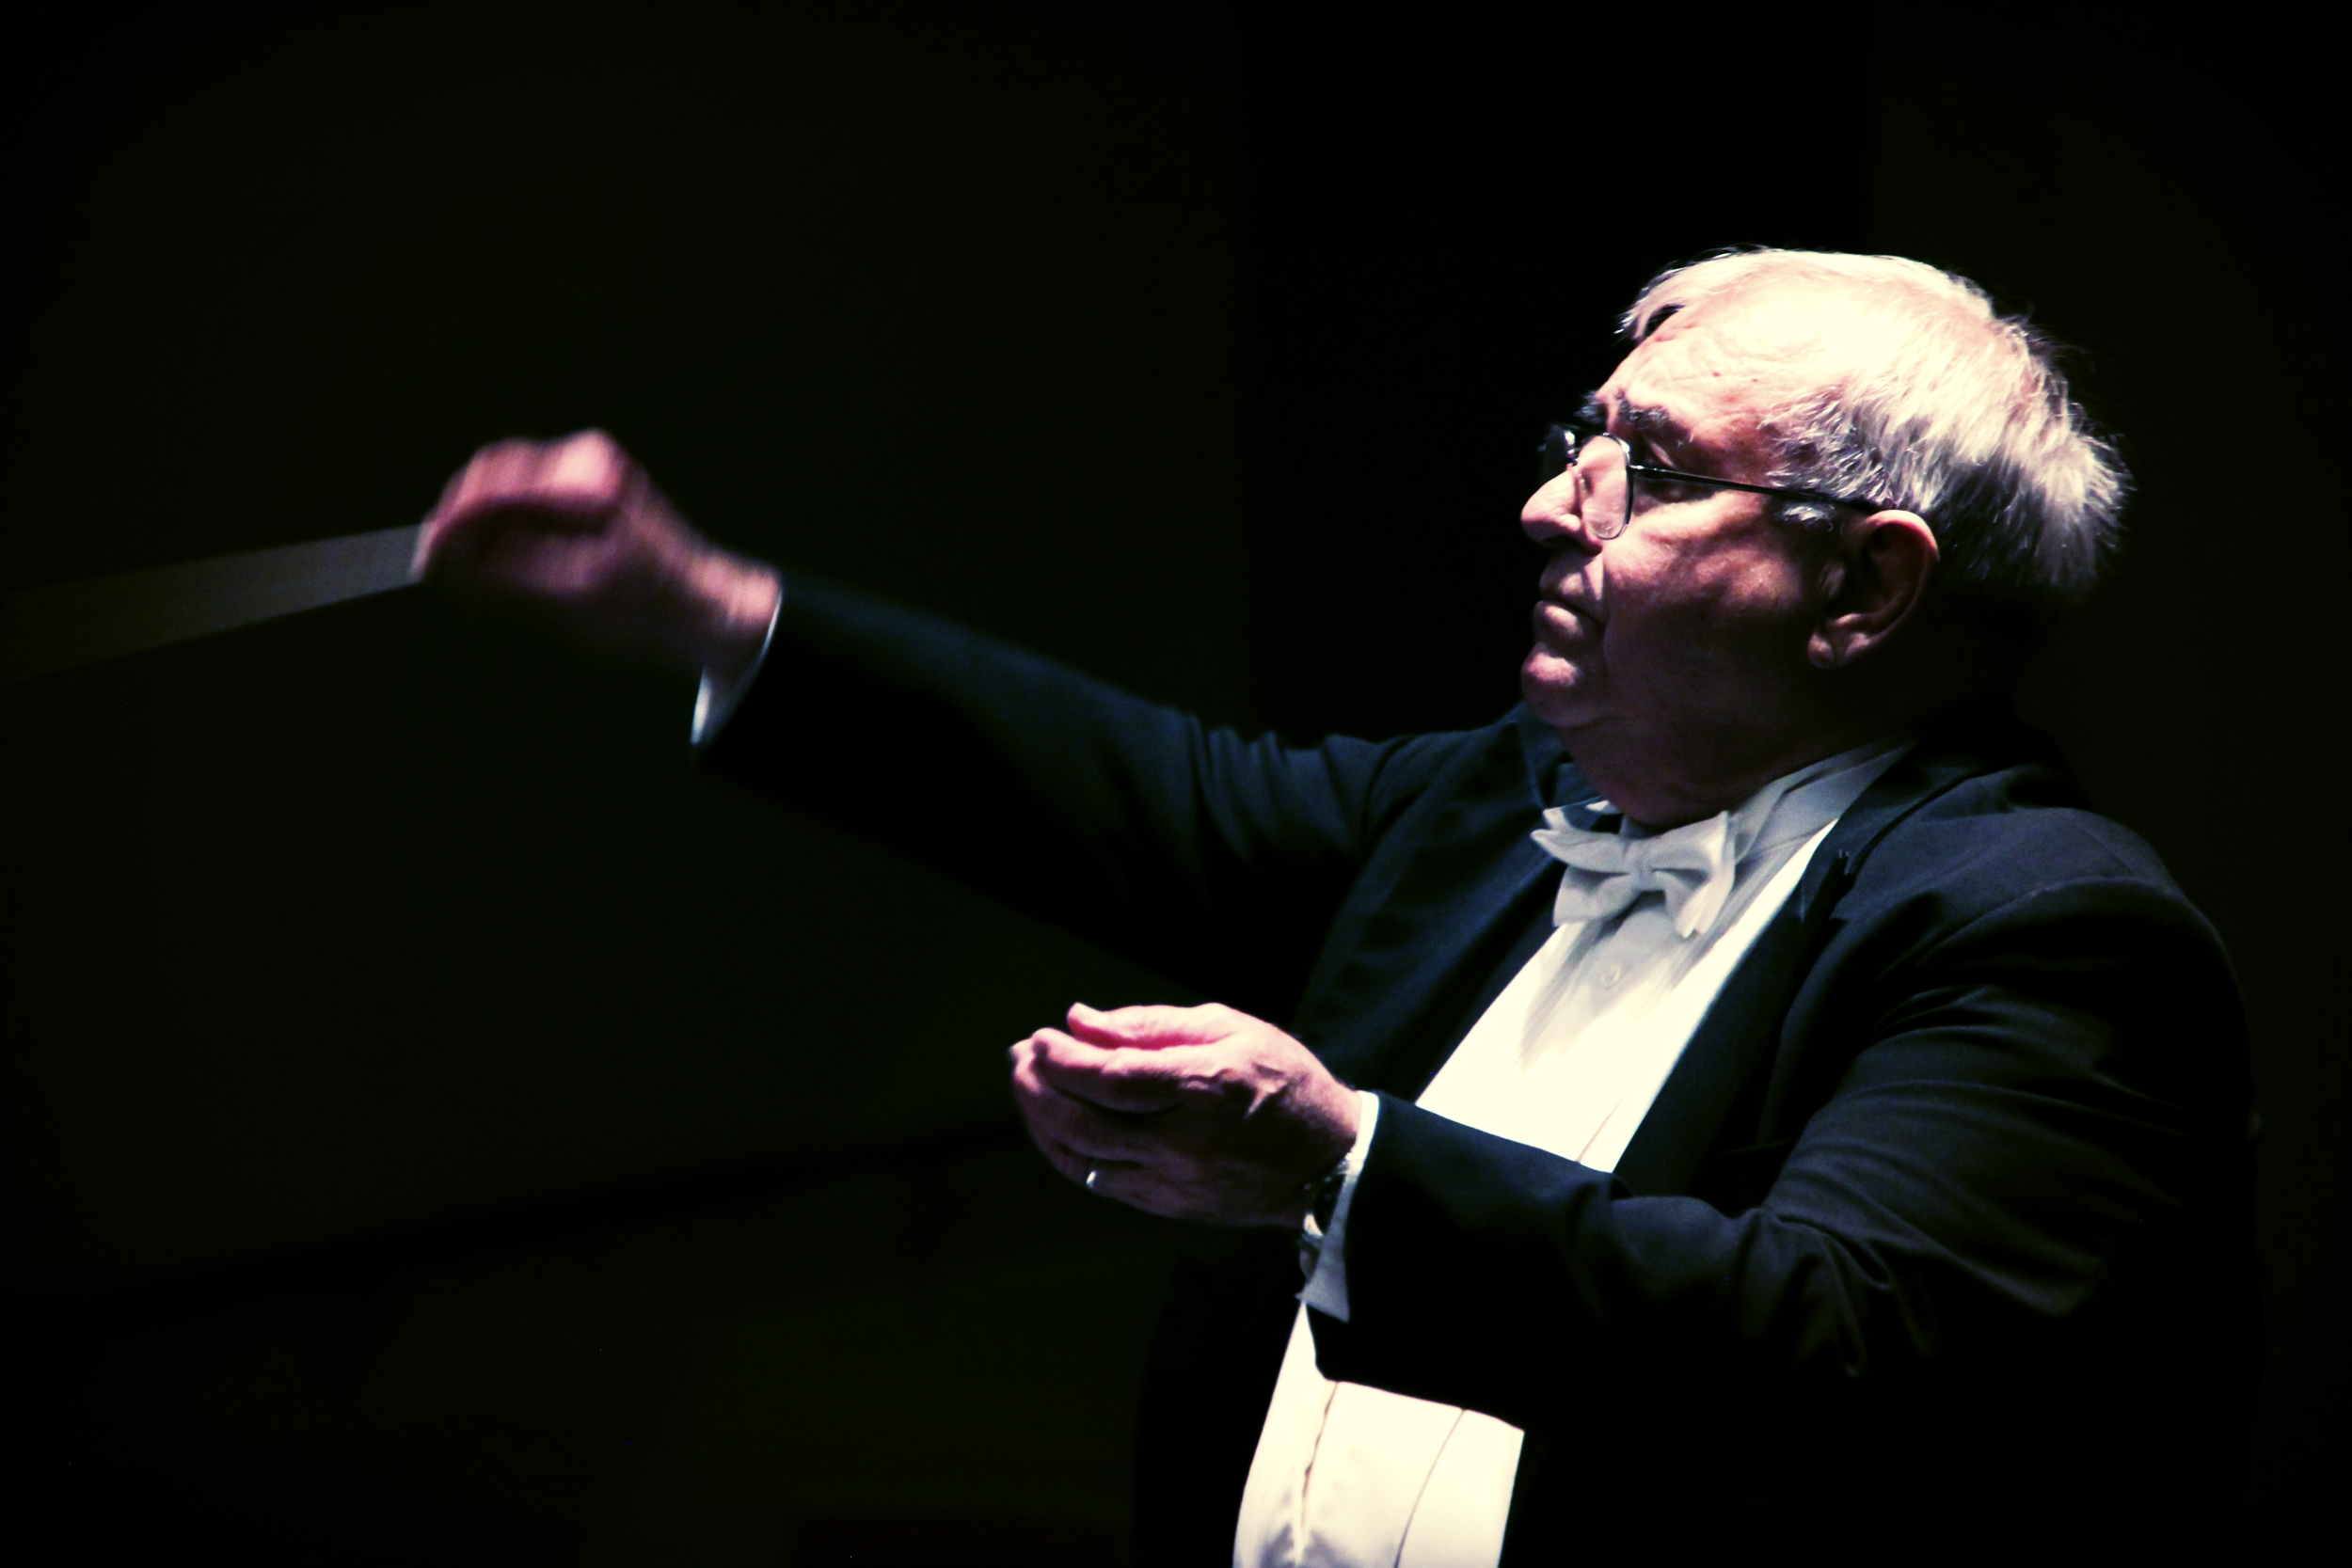 Dr. Robert Rustowicz, Music Director and Conductor